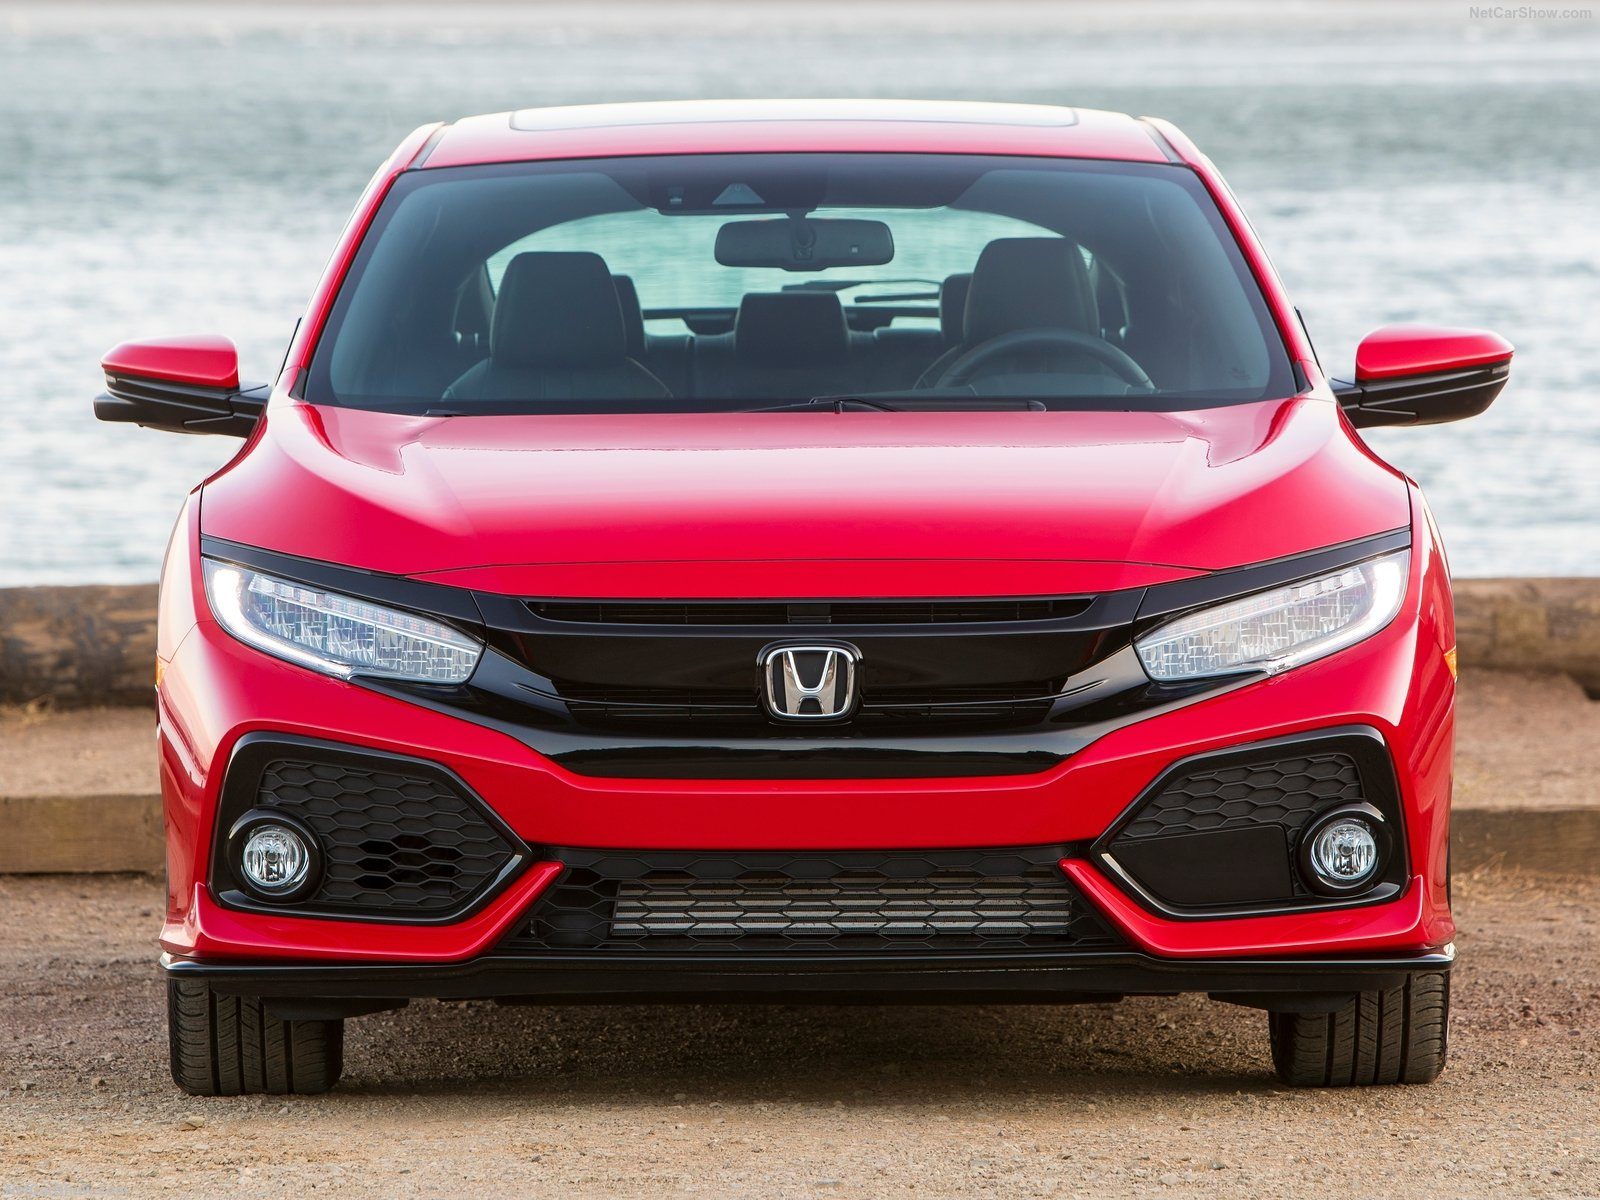 Honda-Civic_Hatchback-2017-1600-66.jpg